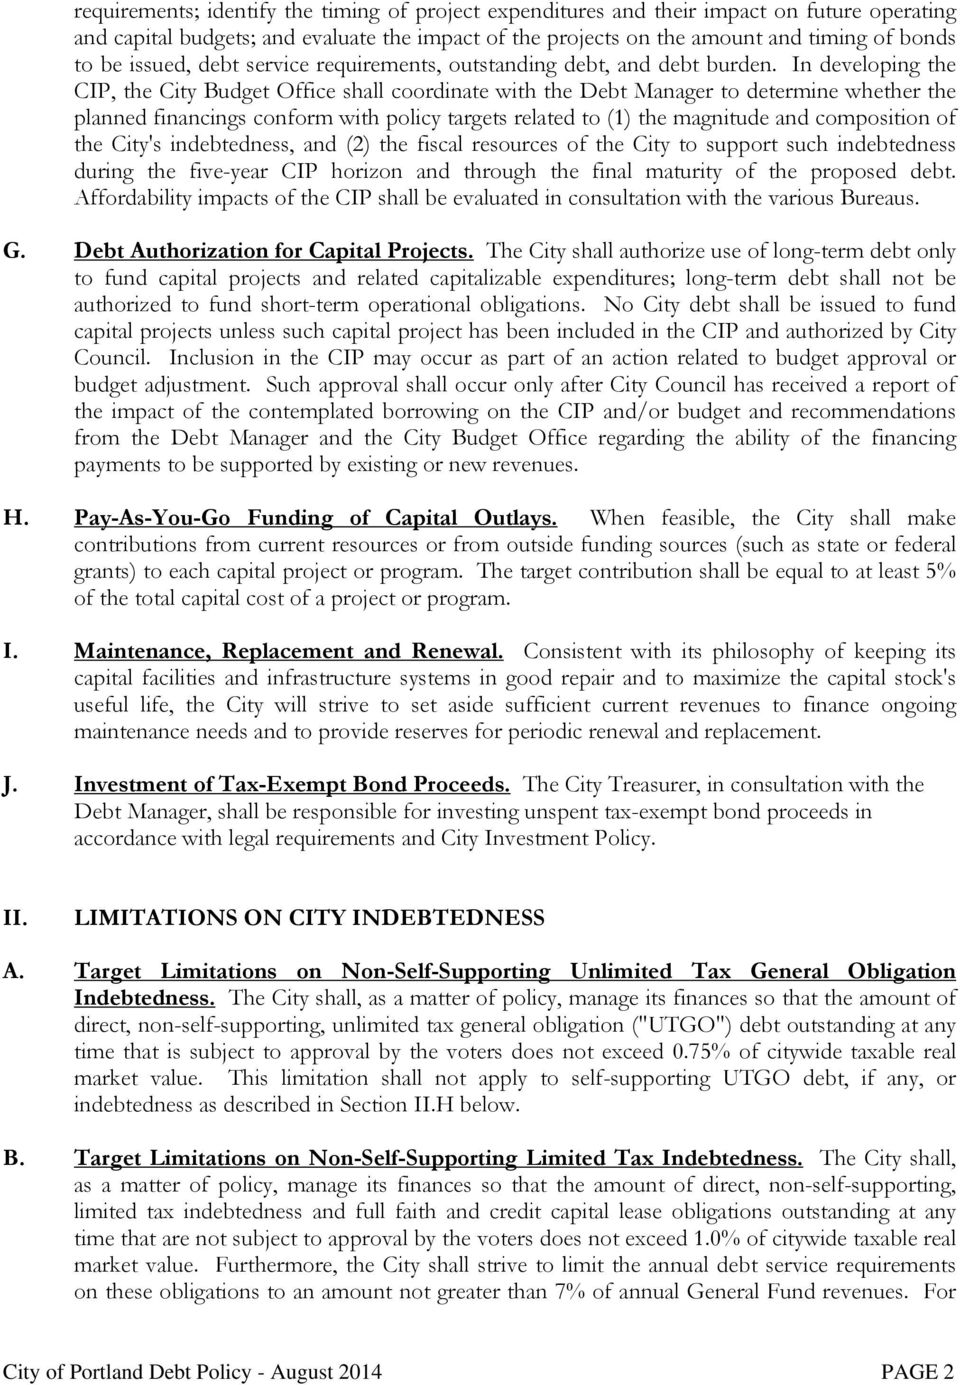 In developing the CIP, the City Budget Office shall coordinate with the Debt Manager to determine whether the planned financings conform with policy targets related to (1) the magnitude and